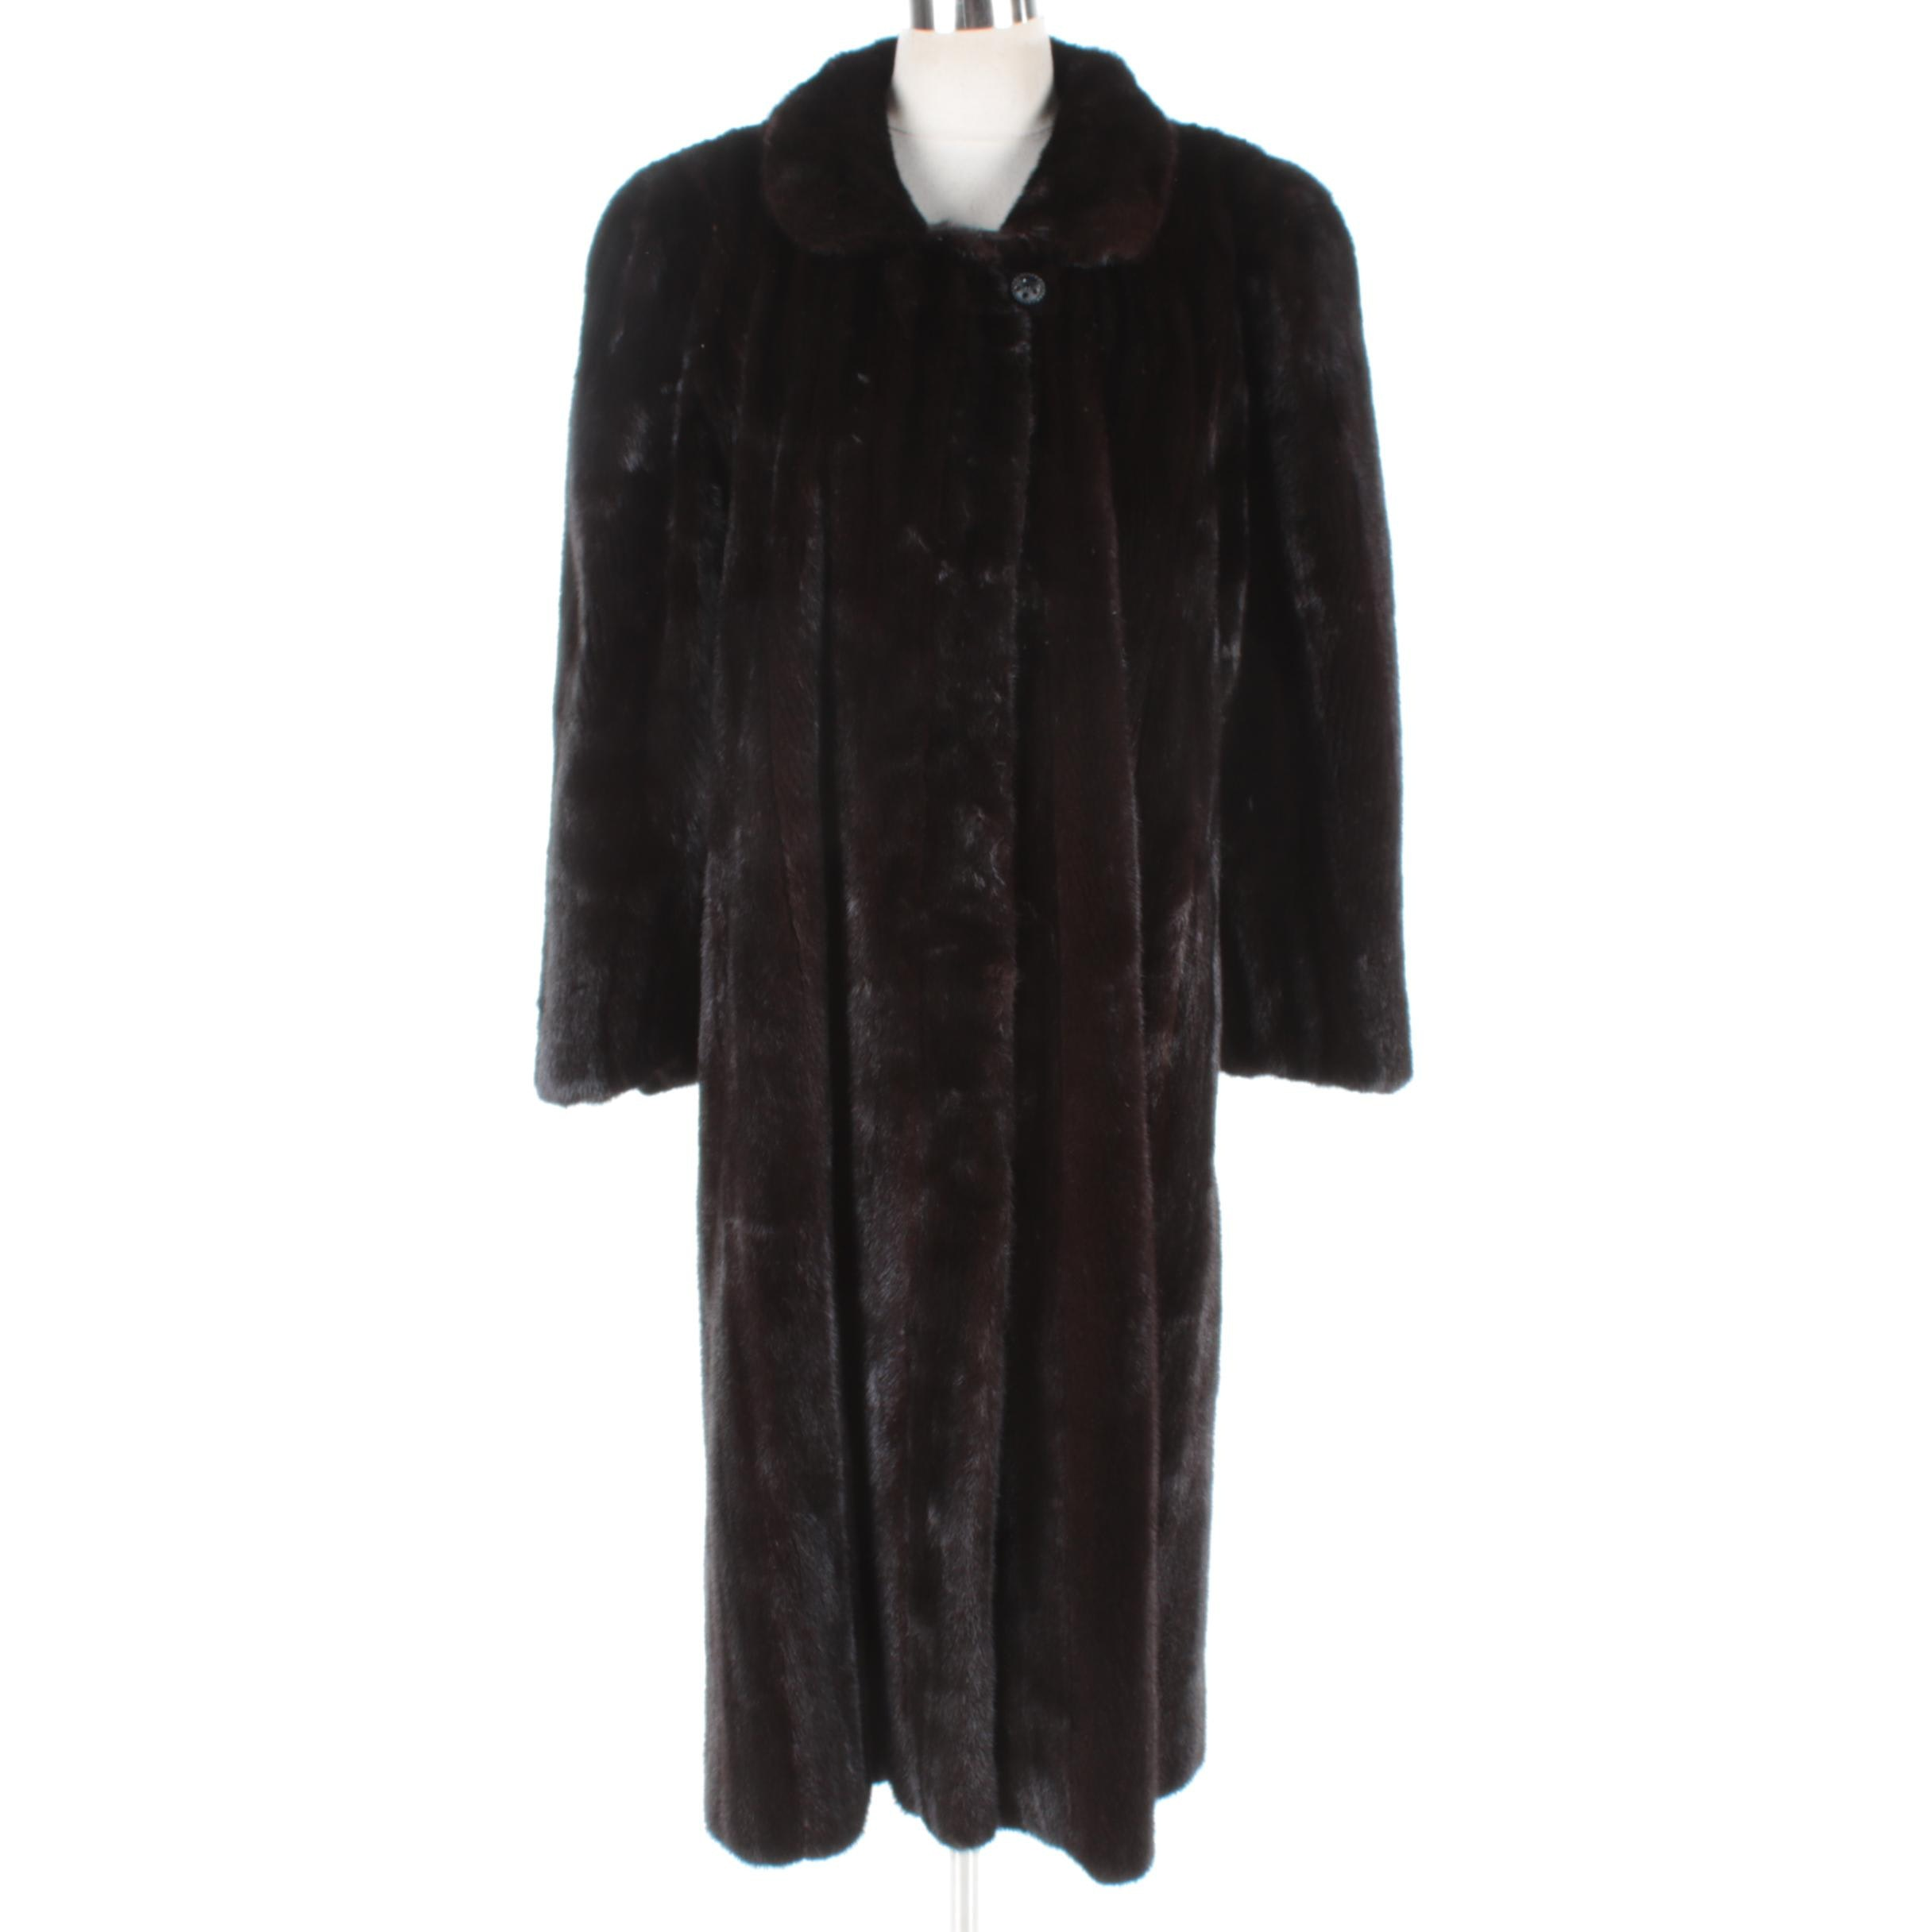 Women's Vintage Mink Fur Coat